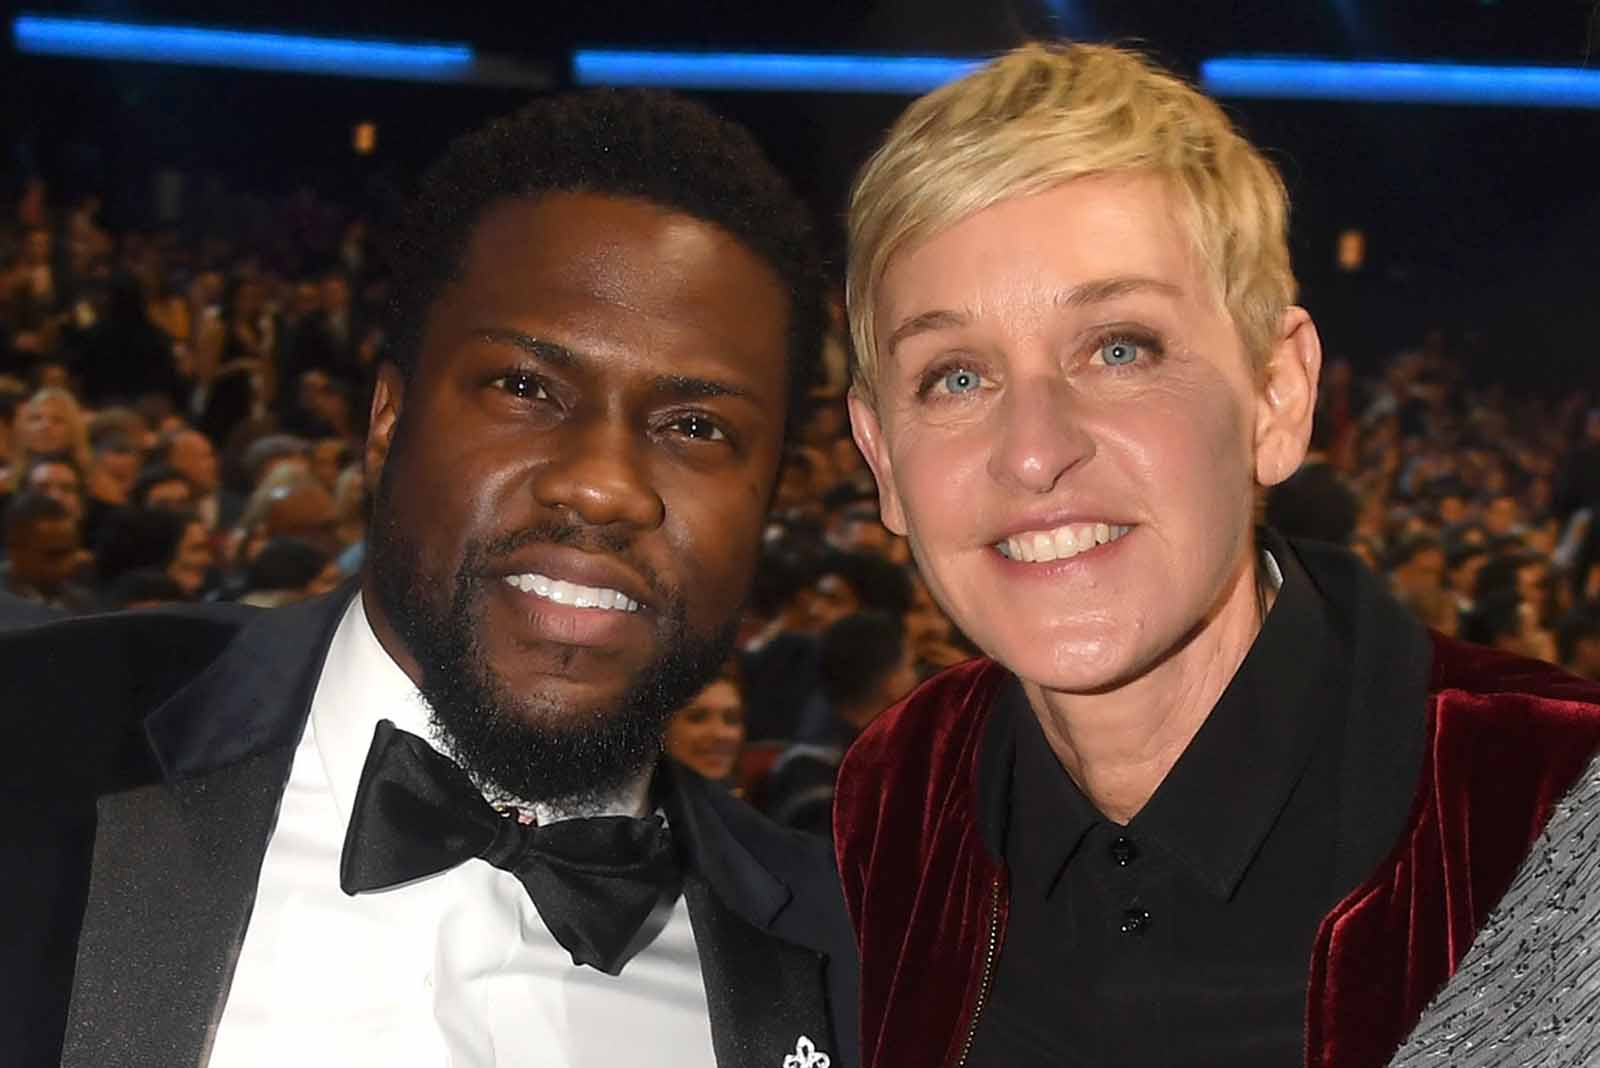 As stories continue to come out about Ellen DeGeneres being mean, many of her celebrity friends and co-workers are coming to her defense.